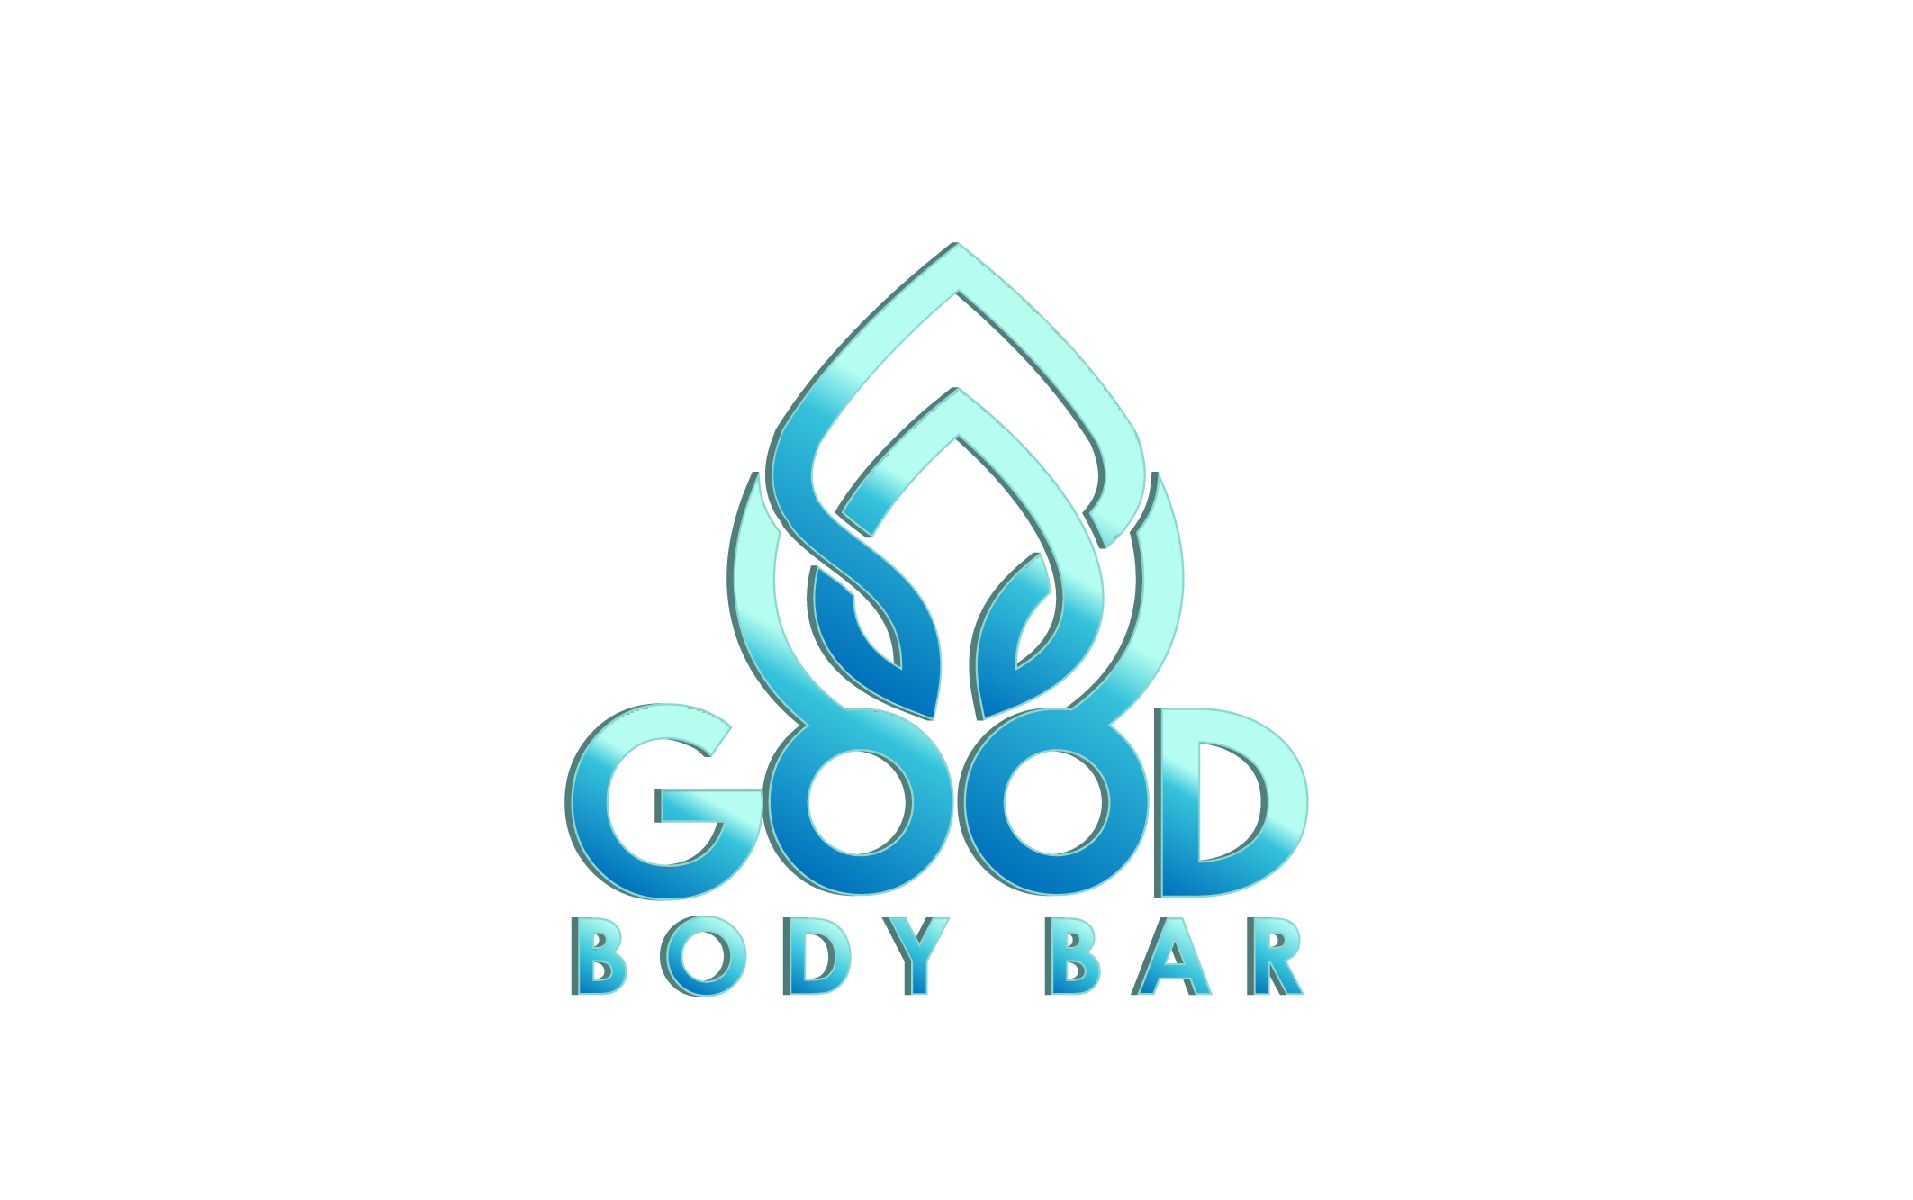 Good Body Bar